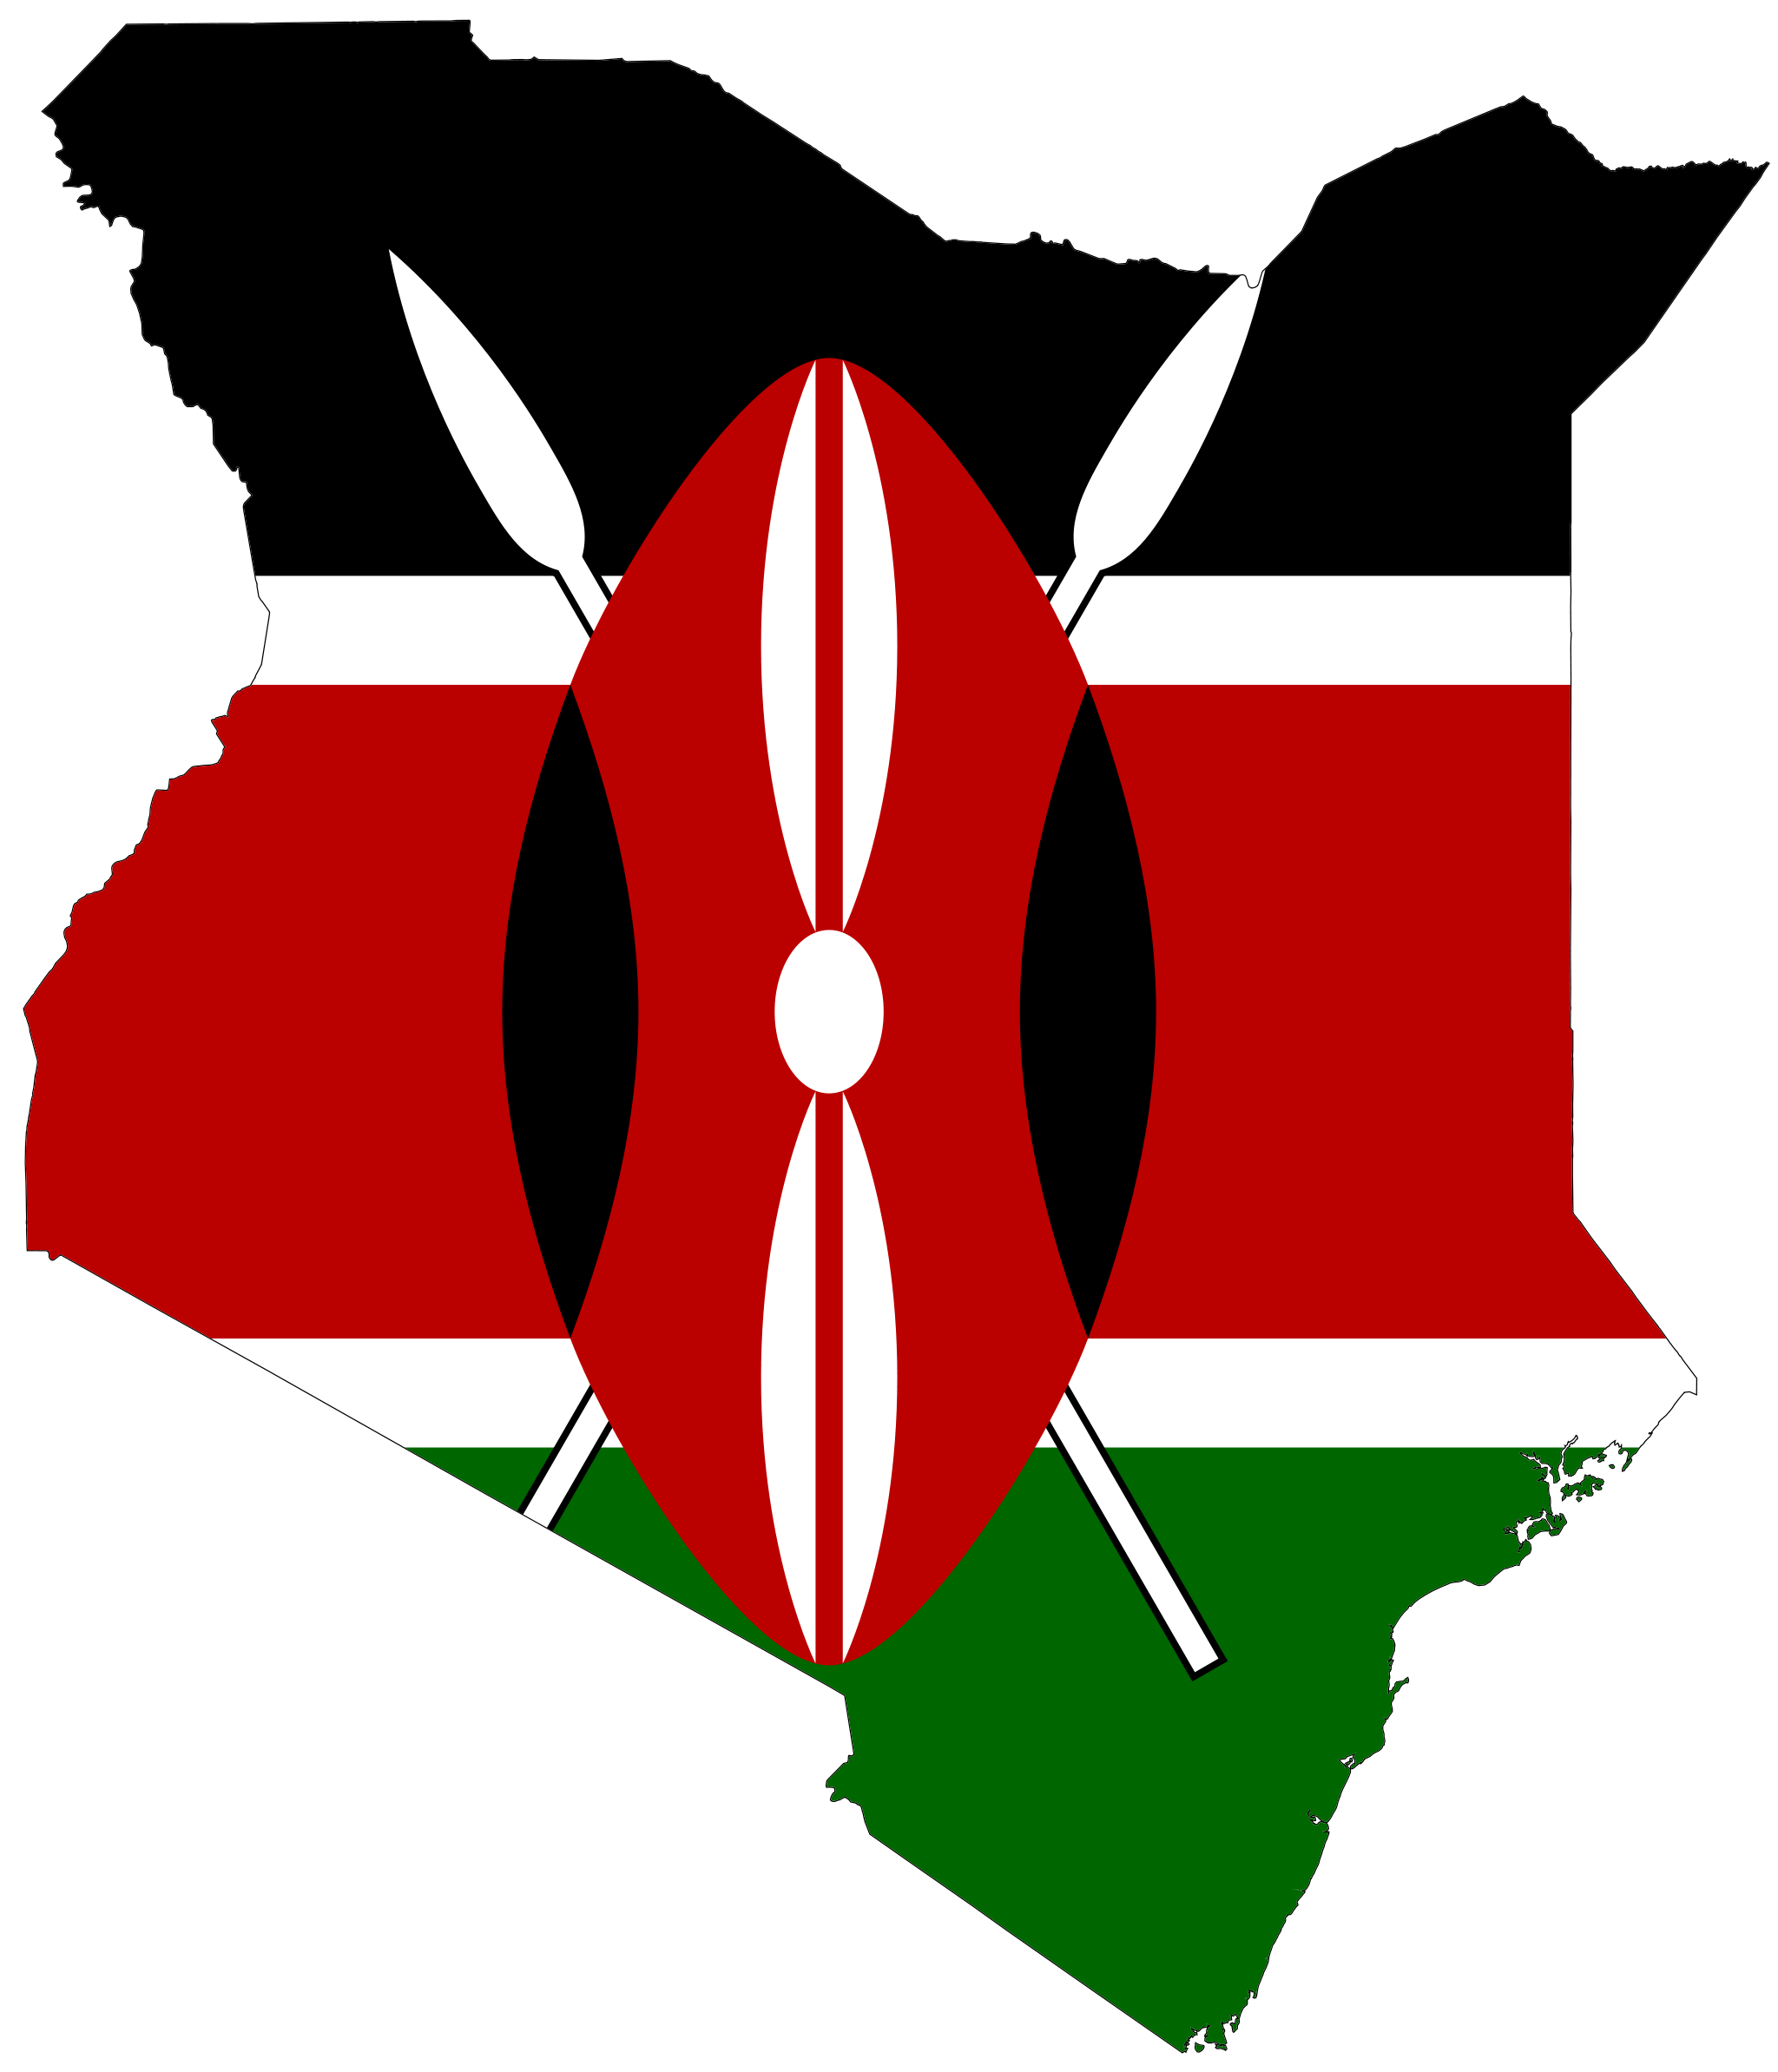 Kenya Discontinues Entry Visa Application on Arrival